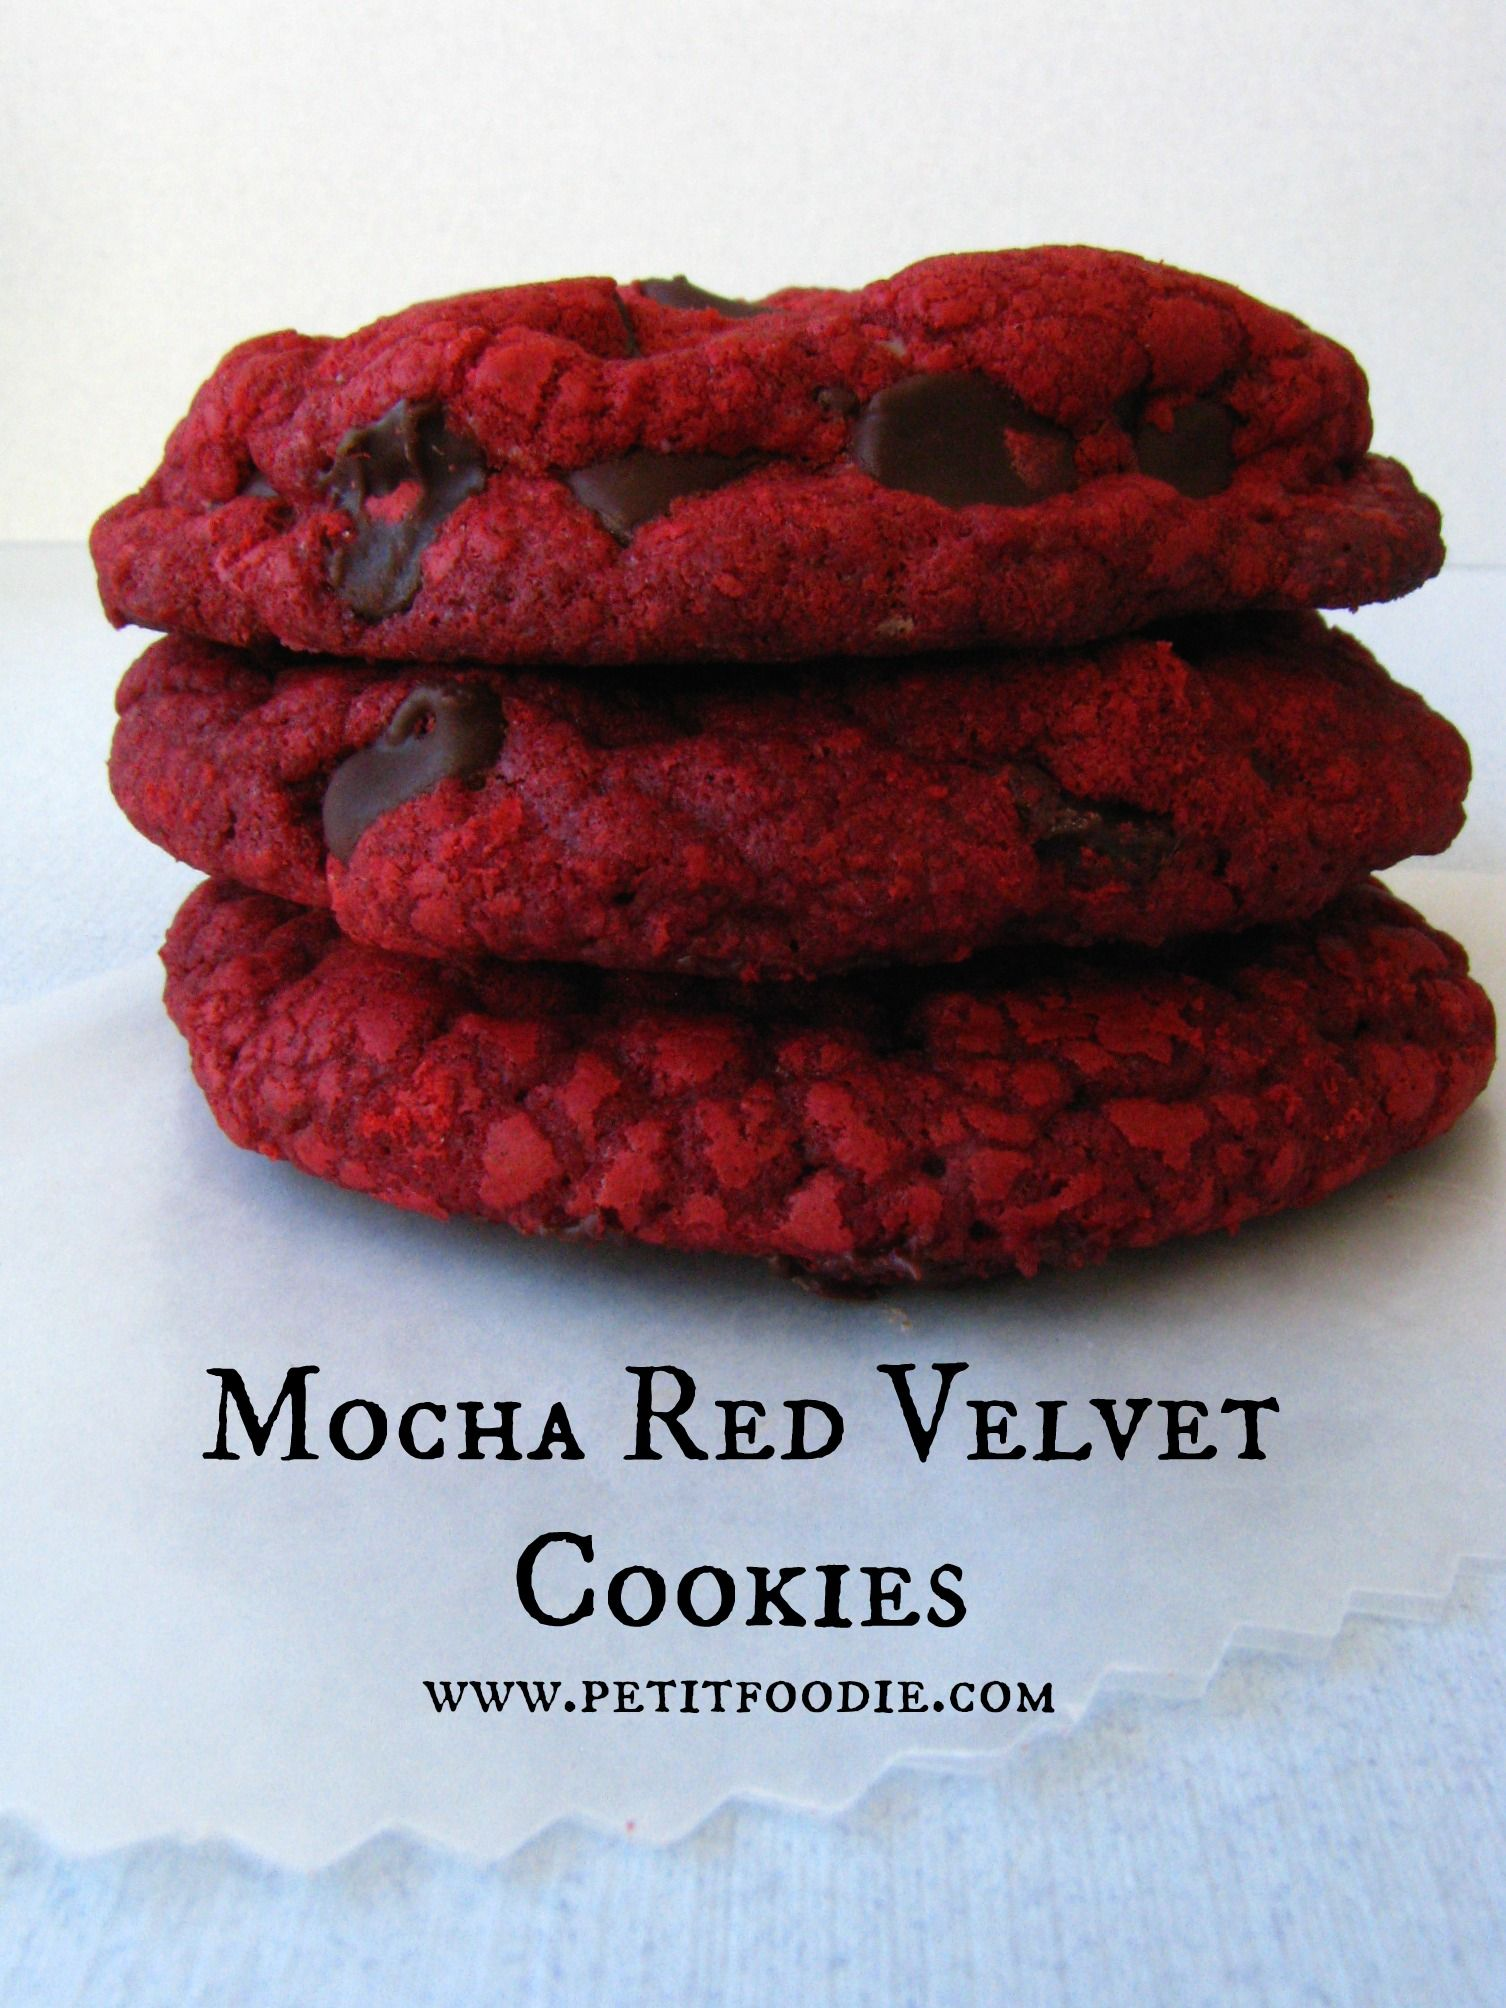 Mocha Red Velvet Cookies... I will eat these until my poop is red. Which is what happens when you eat too much red velvet. True story. #Coffee #Mocha #BuffaloBucksCoffee